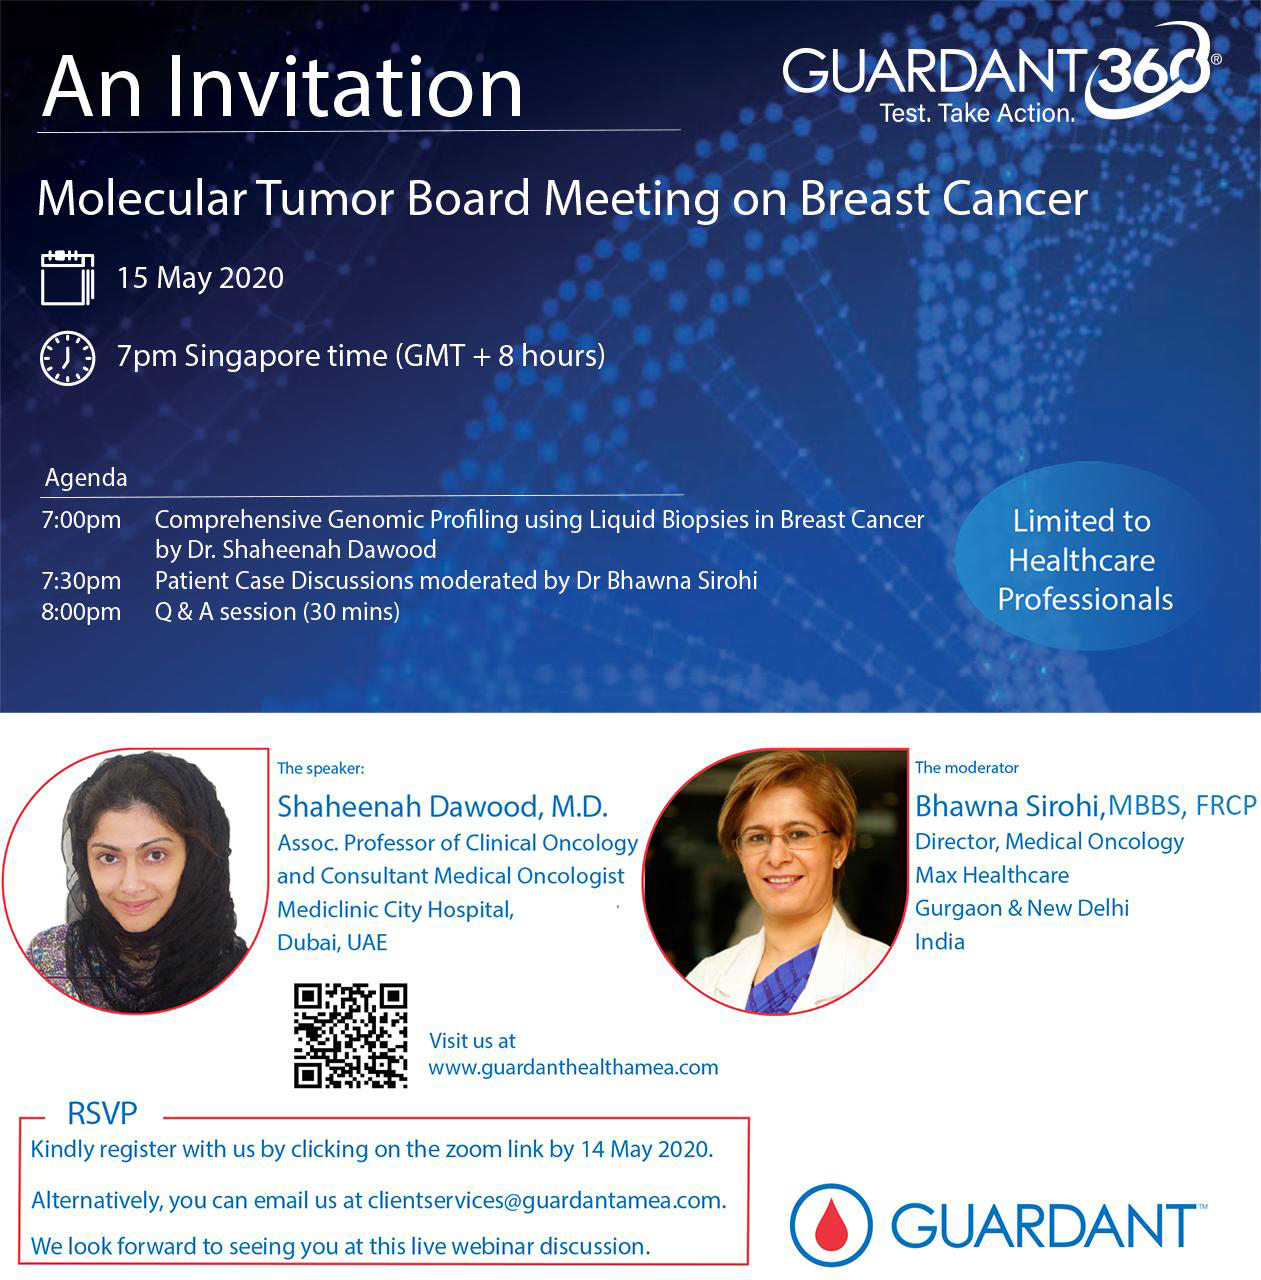 Calling all medical oncologists! Join us tomorrow for a Molecular Tumor Board Webinar on Breast Cancer